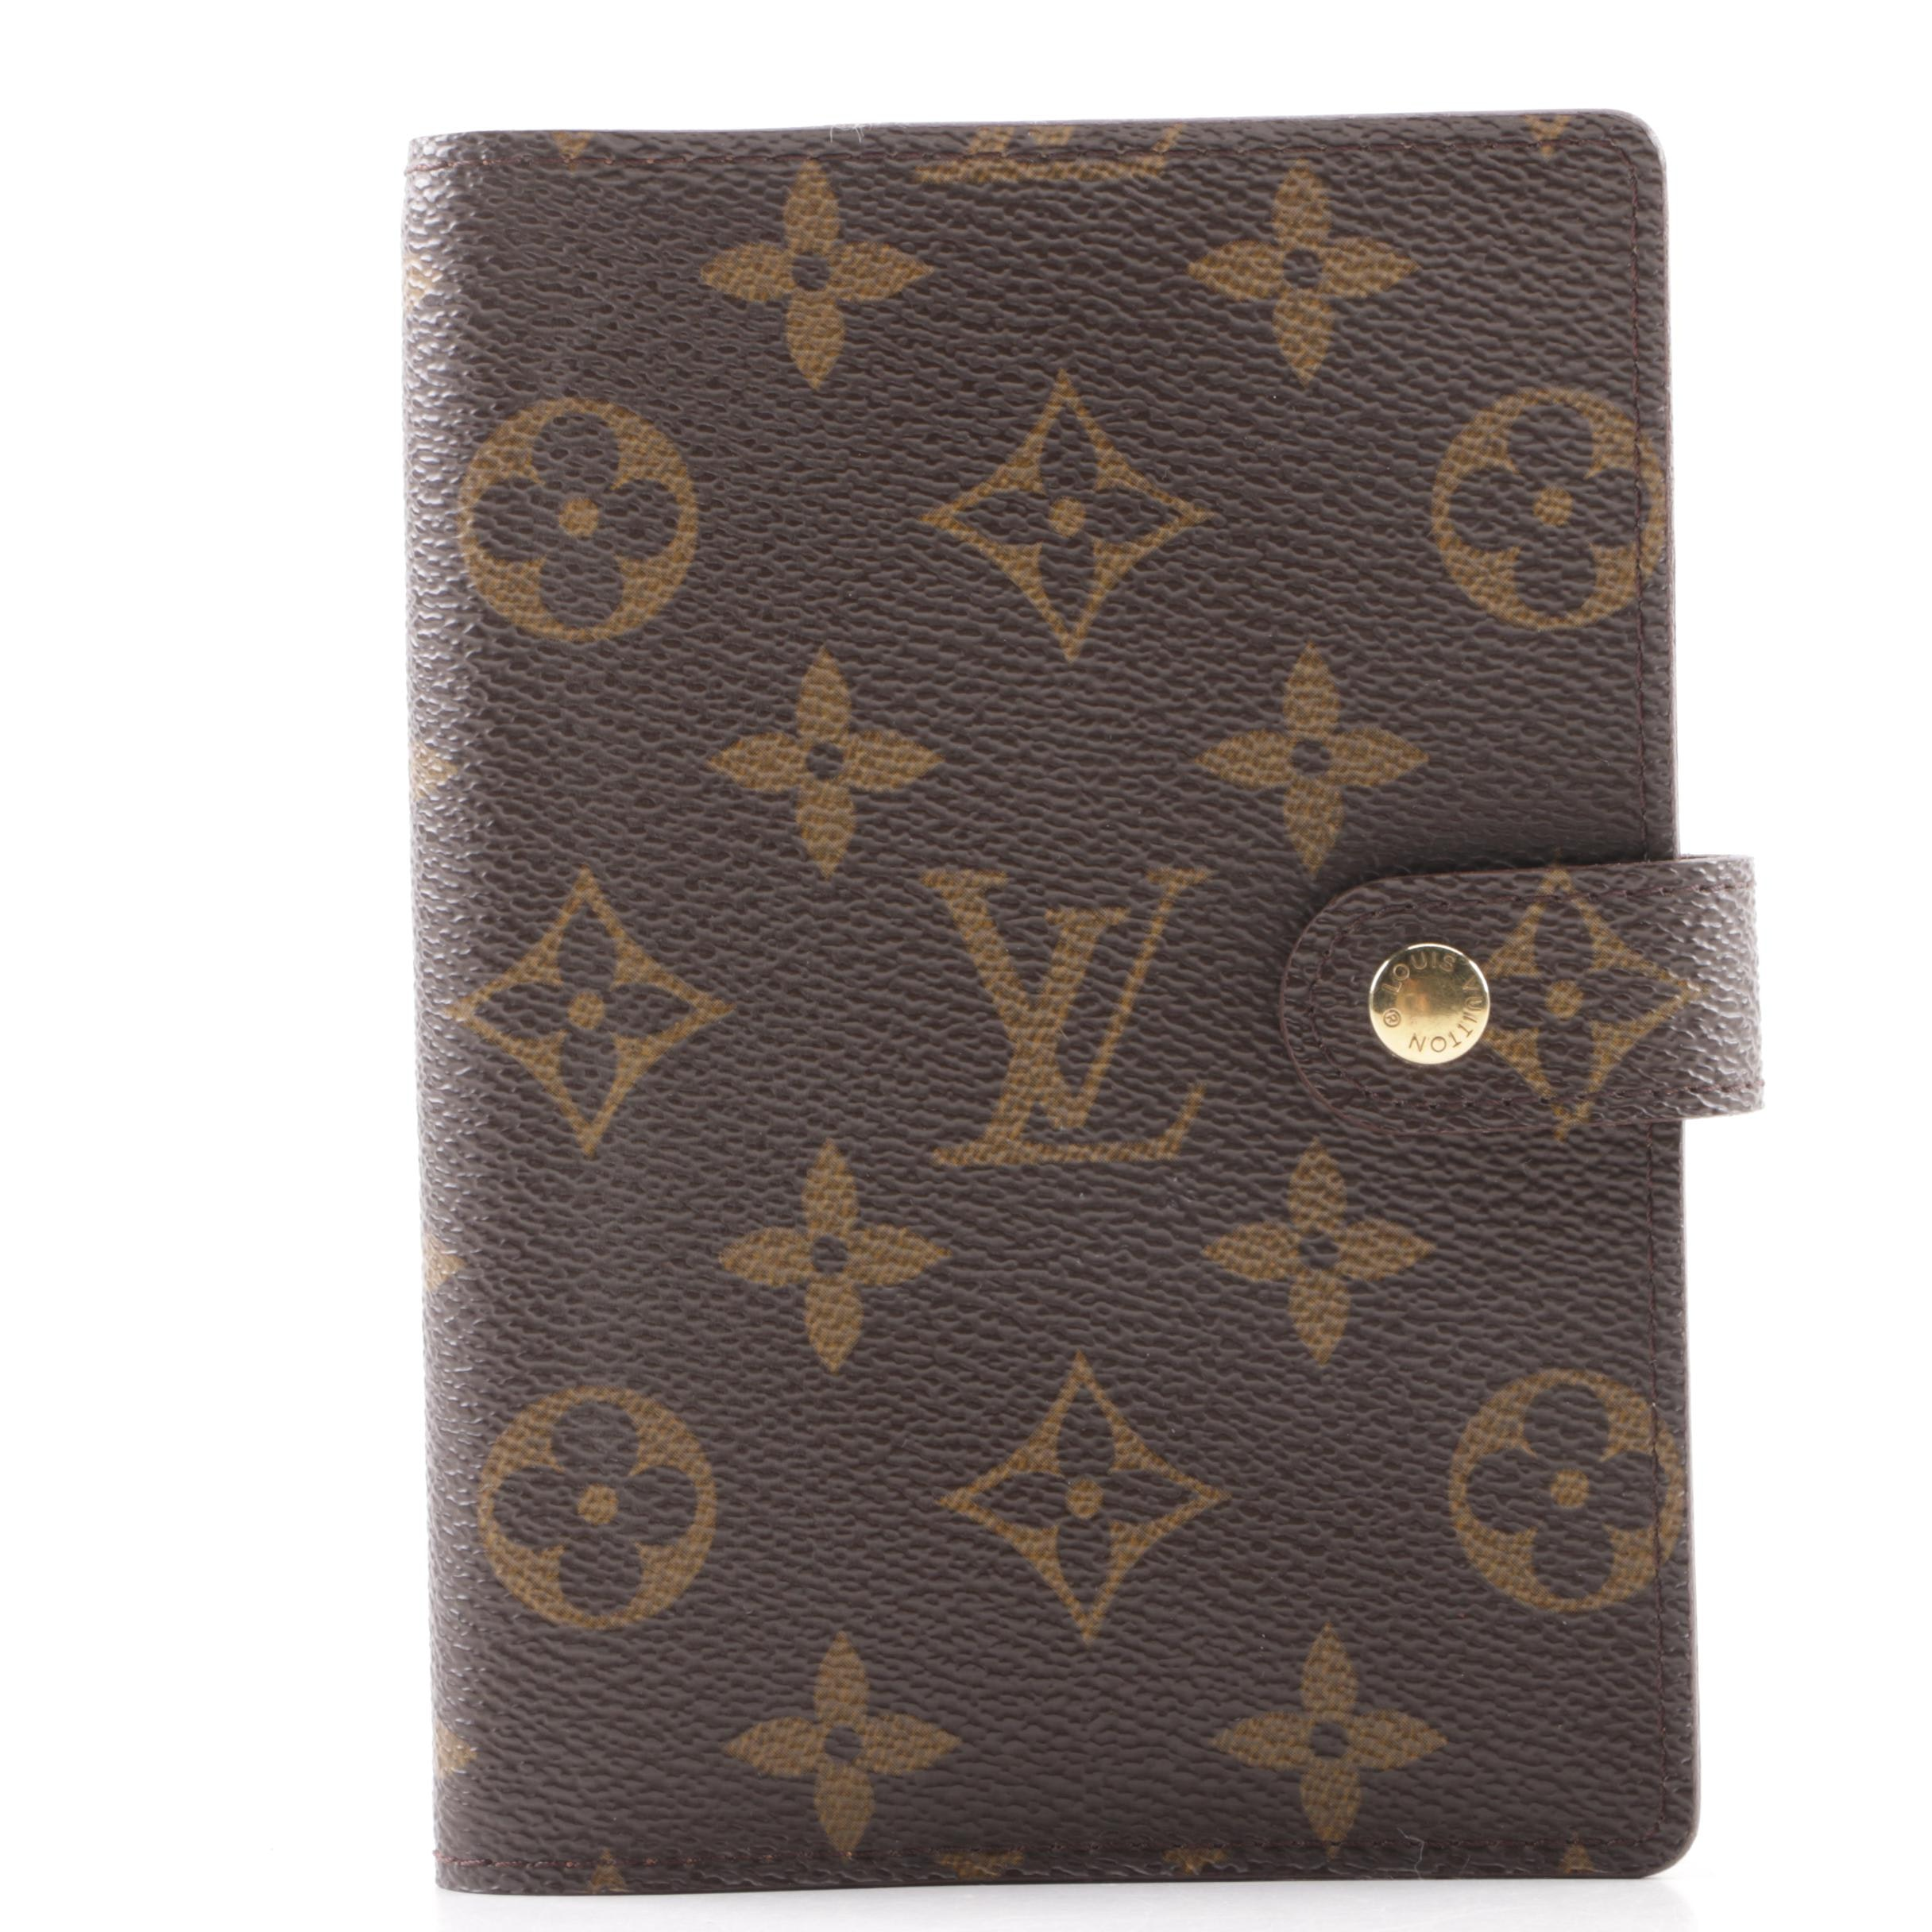 1997 Louis Vuitton Monogram Canvas Small Agenda Cover